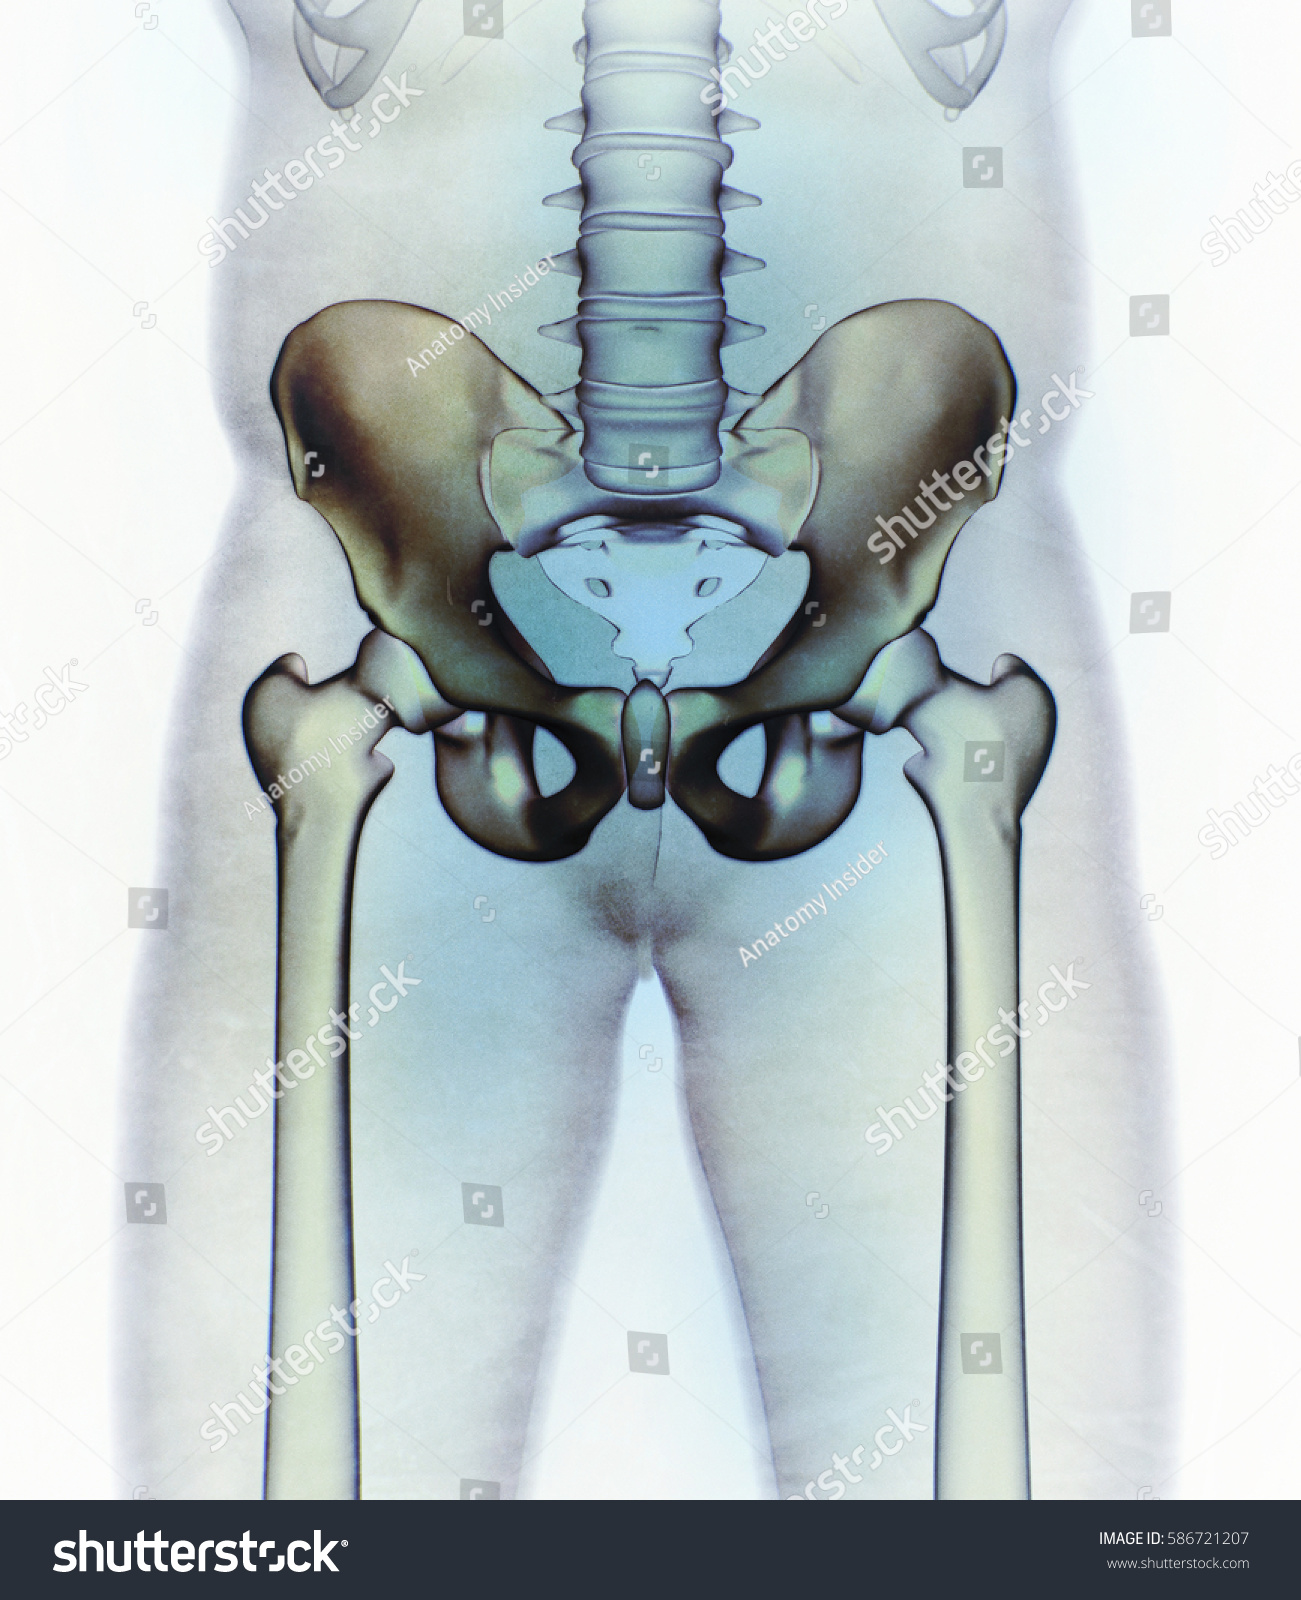 Ilium Bone Hip Bone Pelvis Human Stockillustration 586721207